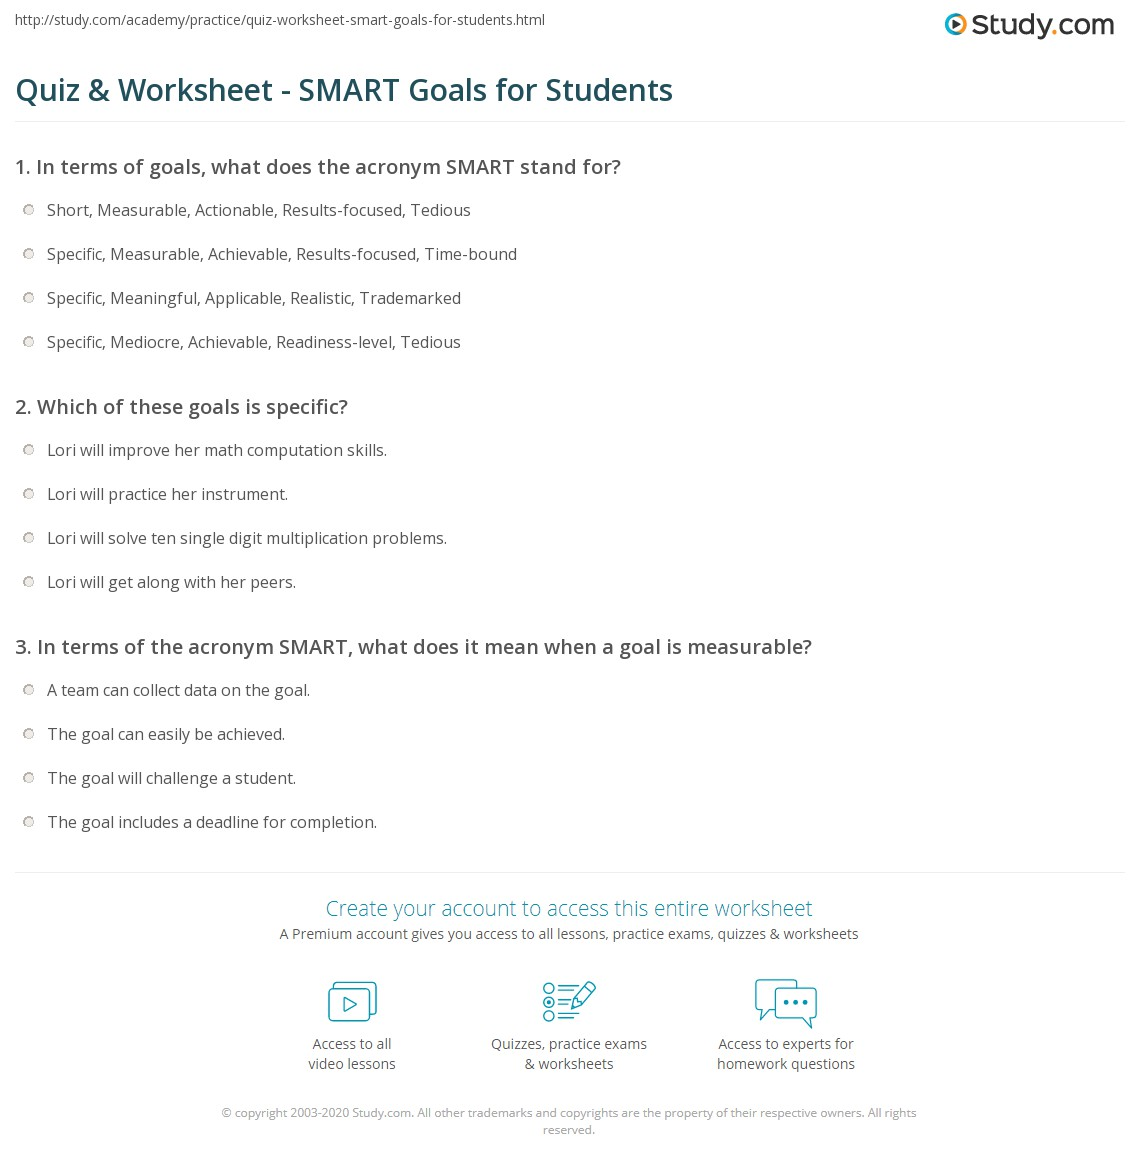 quiz worksheet smart goals for students com print smart goals for students definition and examples worksheet